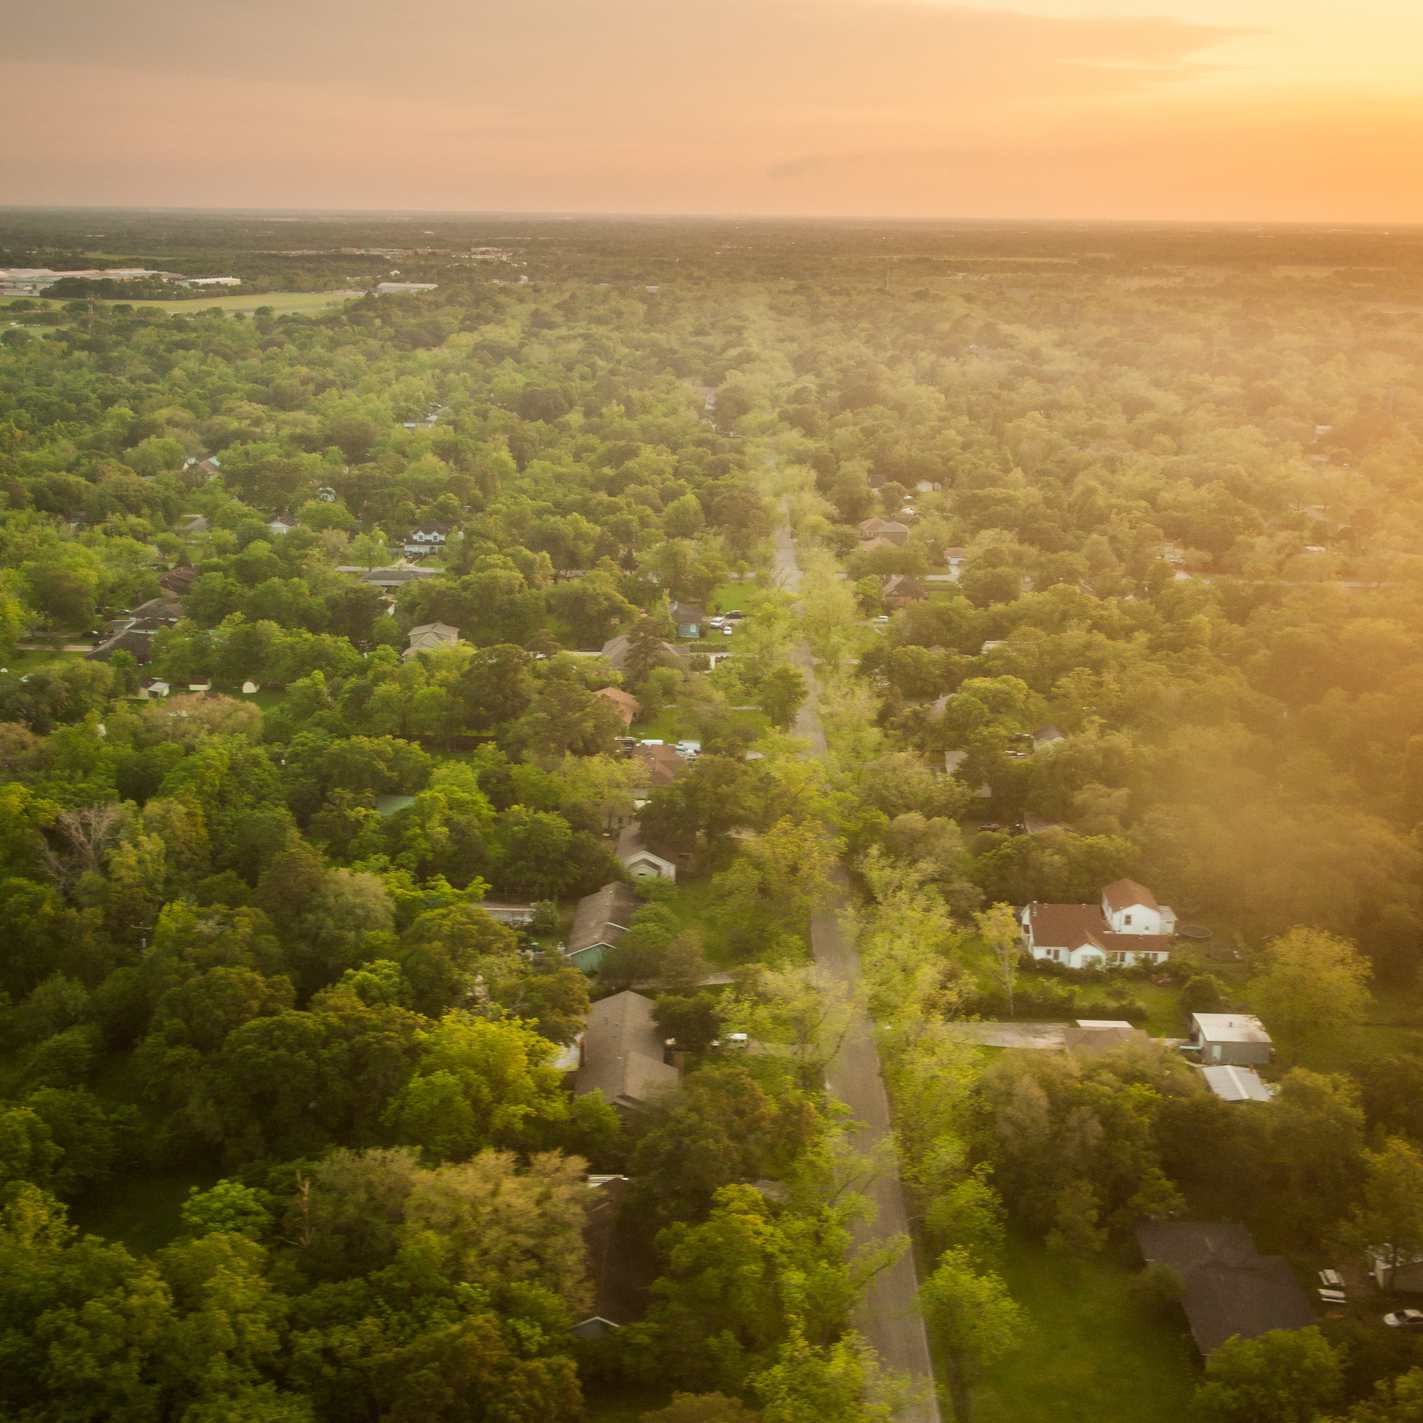 Houston suburbs from above